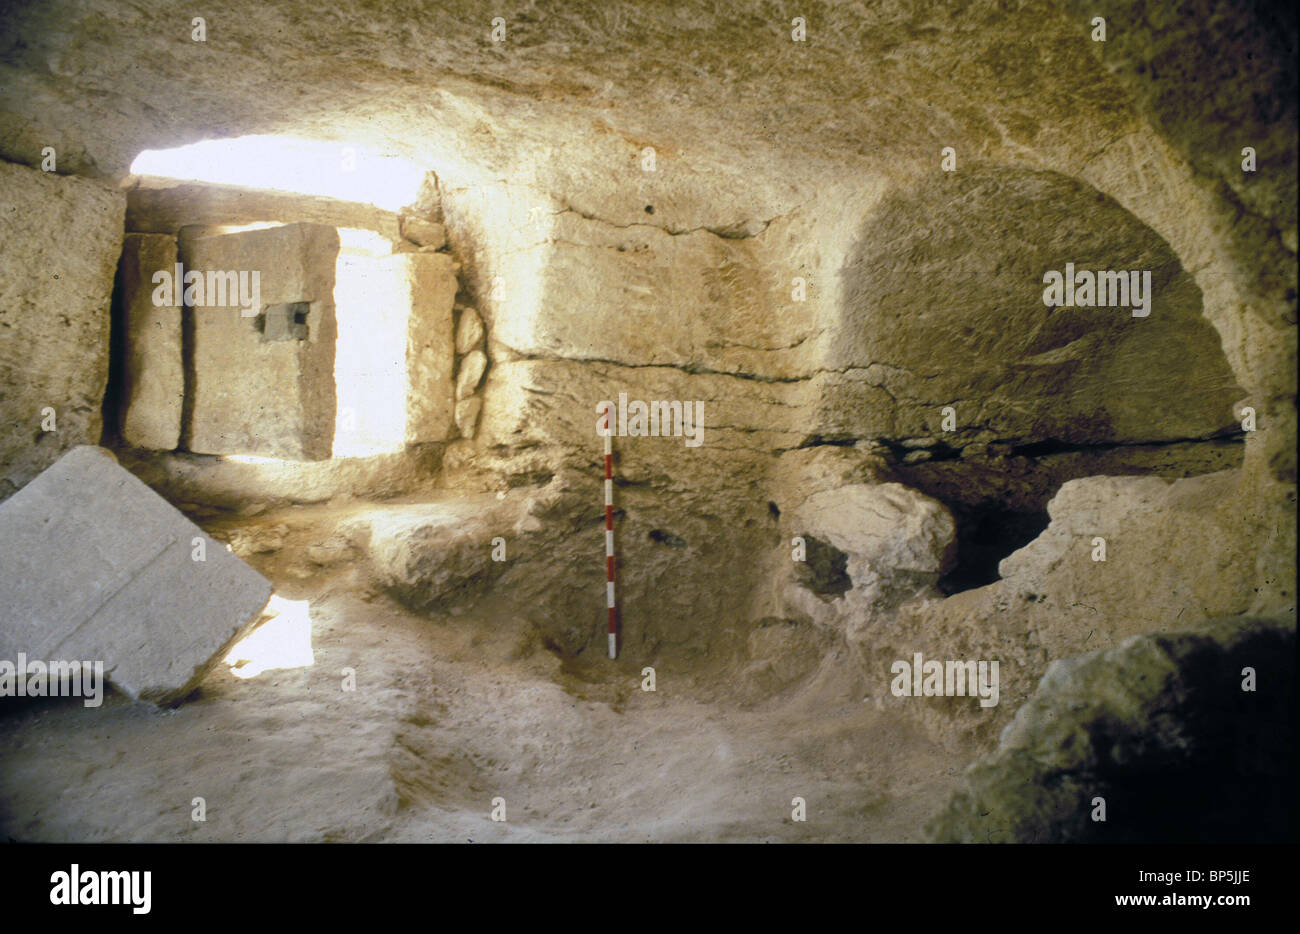 4012. ENTRANCE TO A BYZANTINE PERIOD BURIAL CAVE IN SAMARIA - Stock Image